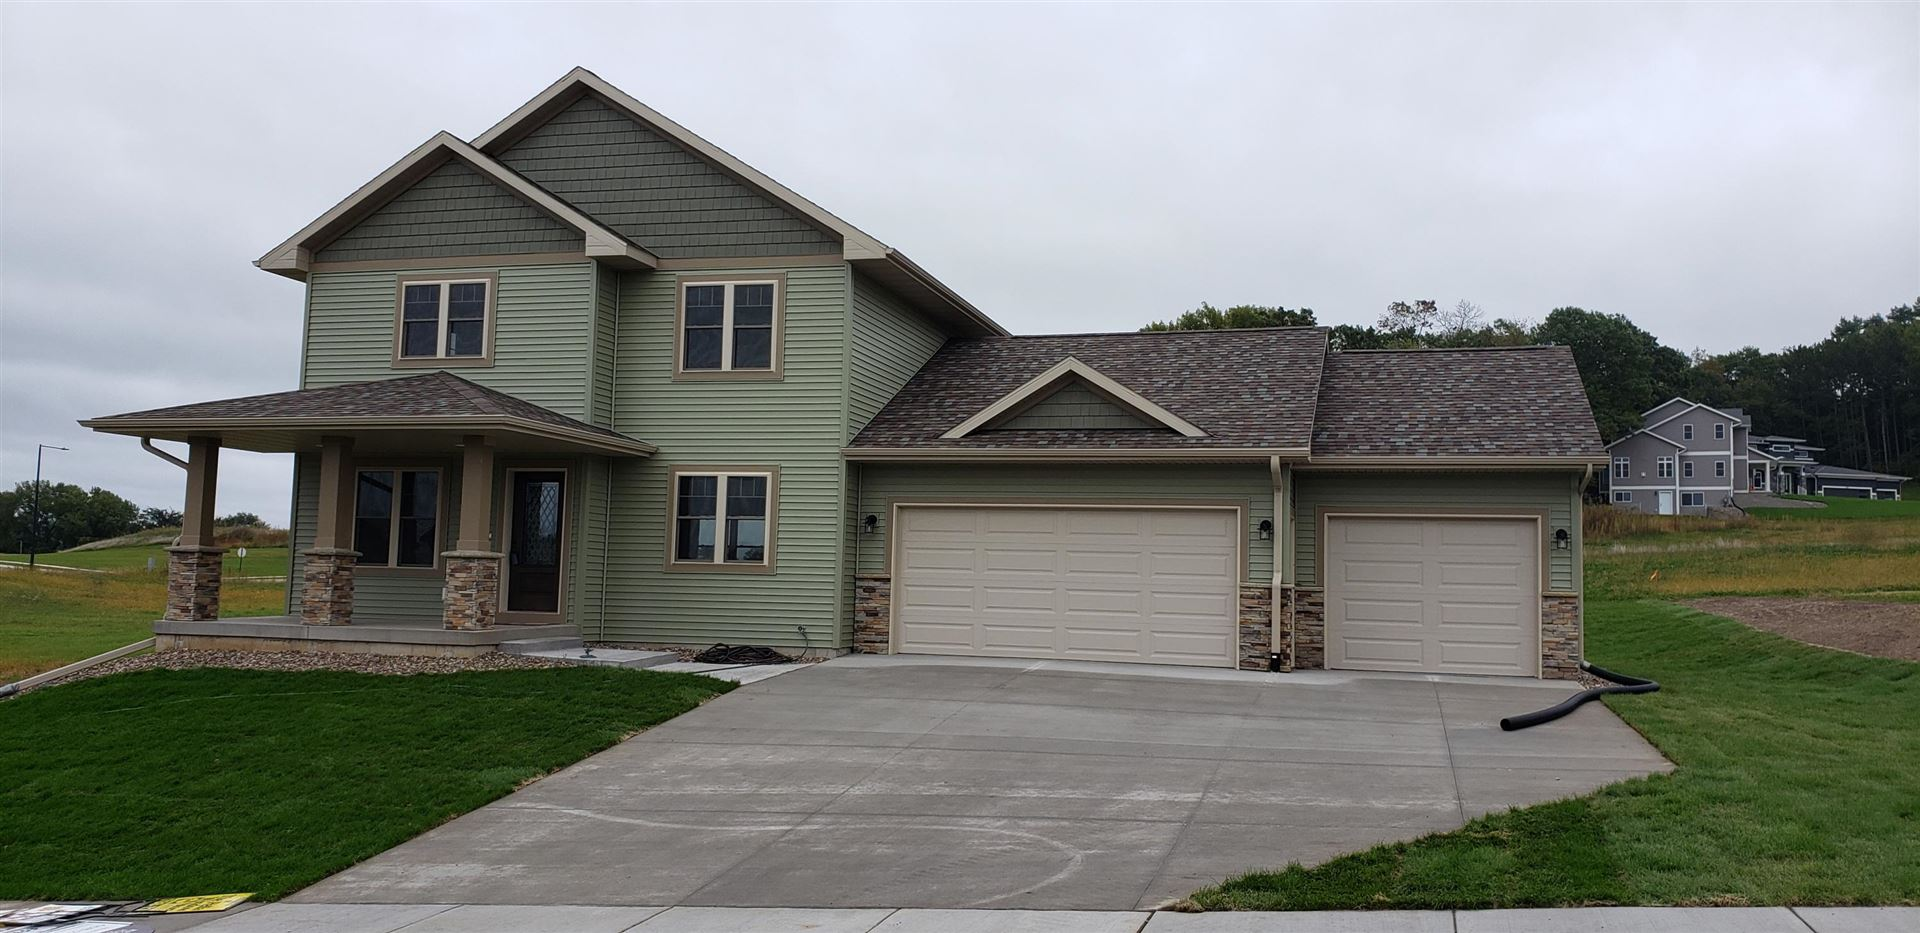 609 Grand Meadow Dr, Holmen, WI 54636 - MLS#: 1643337